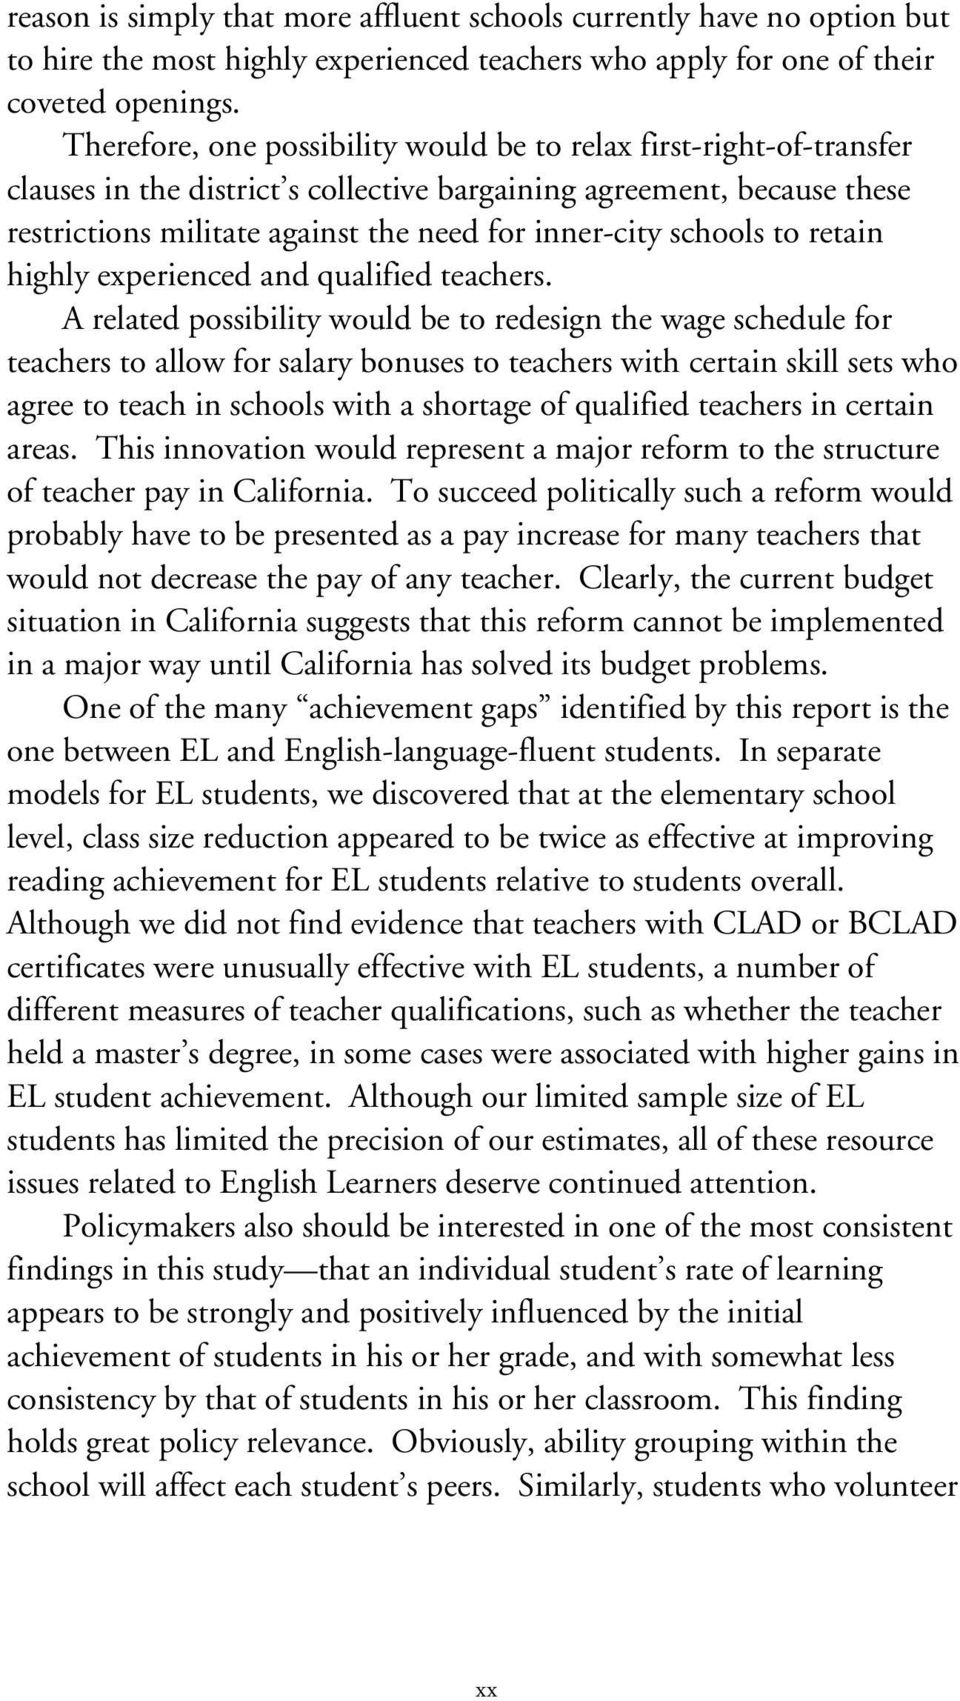 schools to retain highly experienced and qualified teachers.